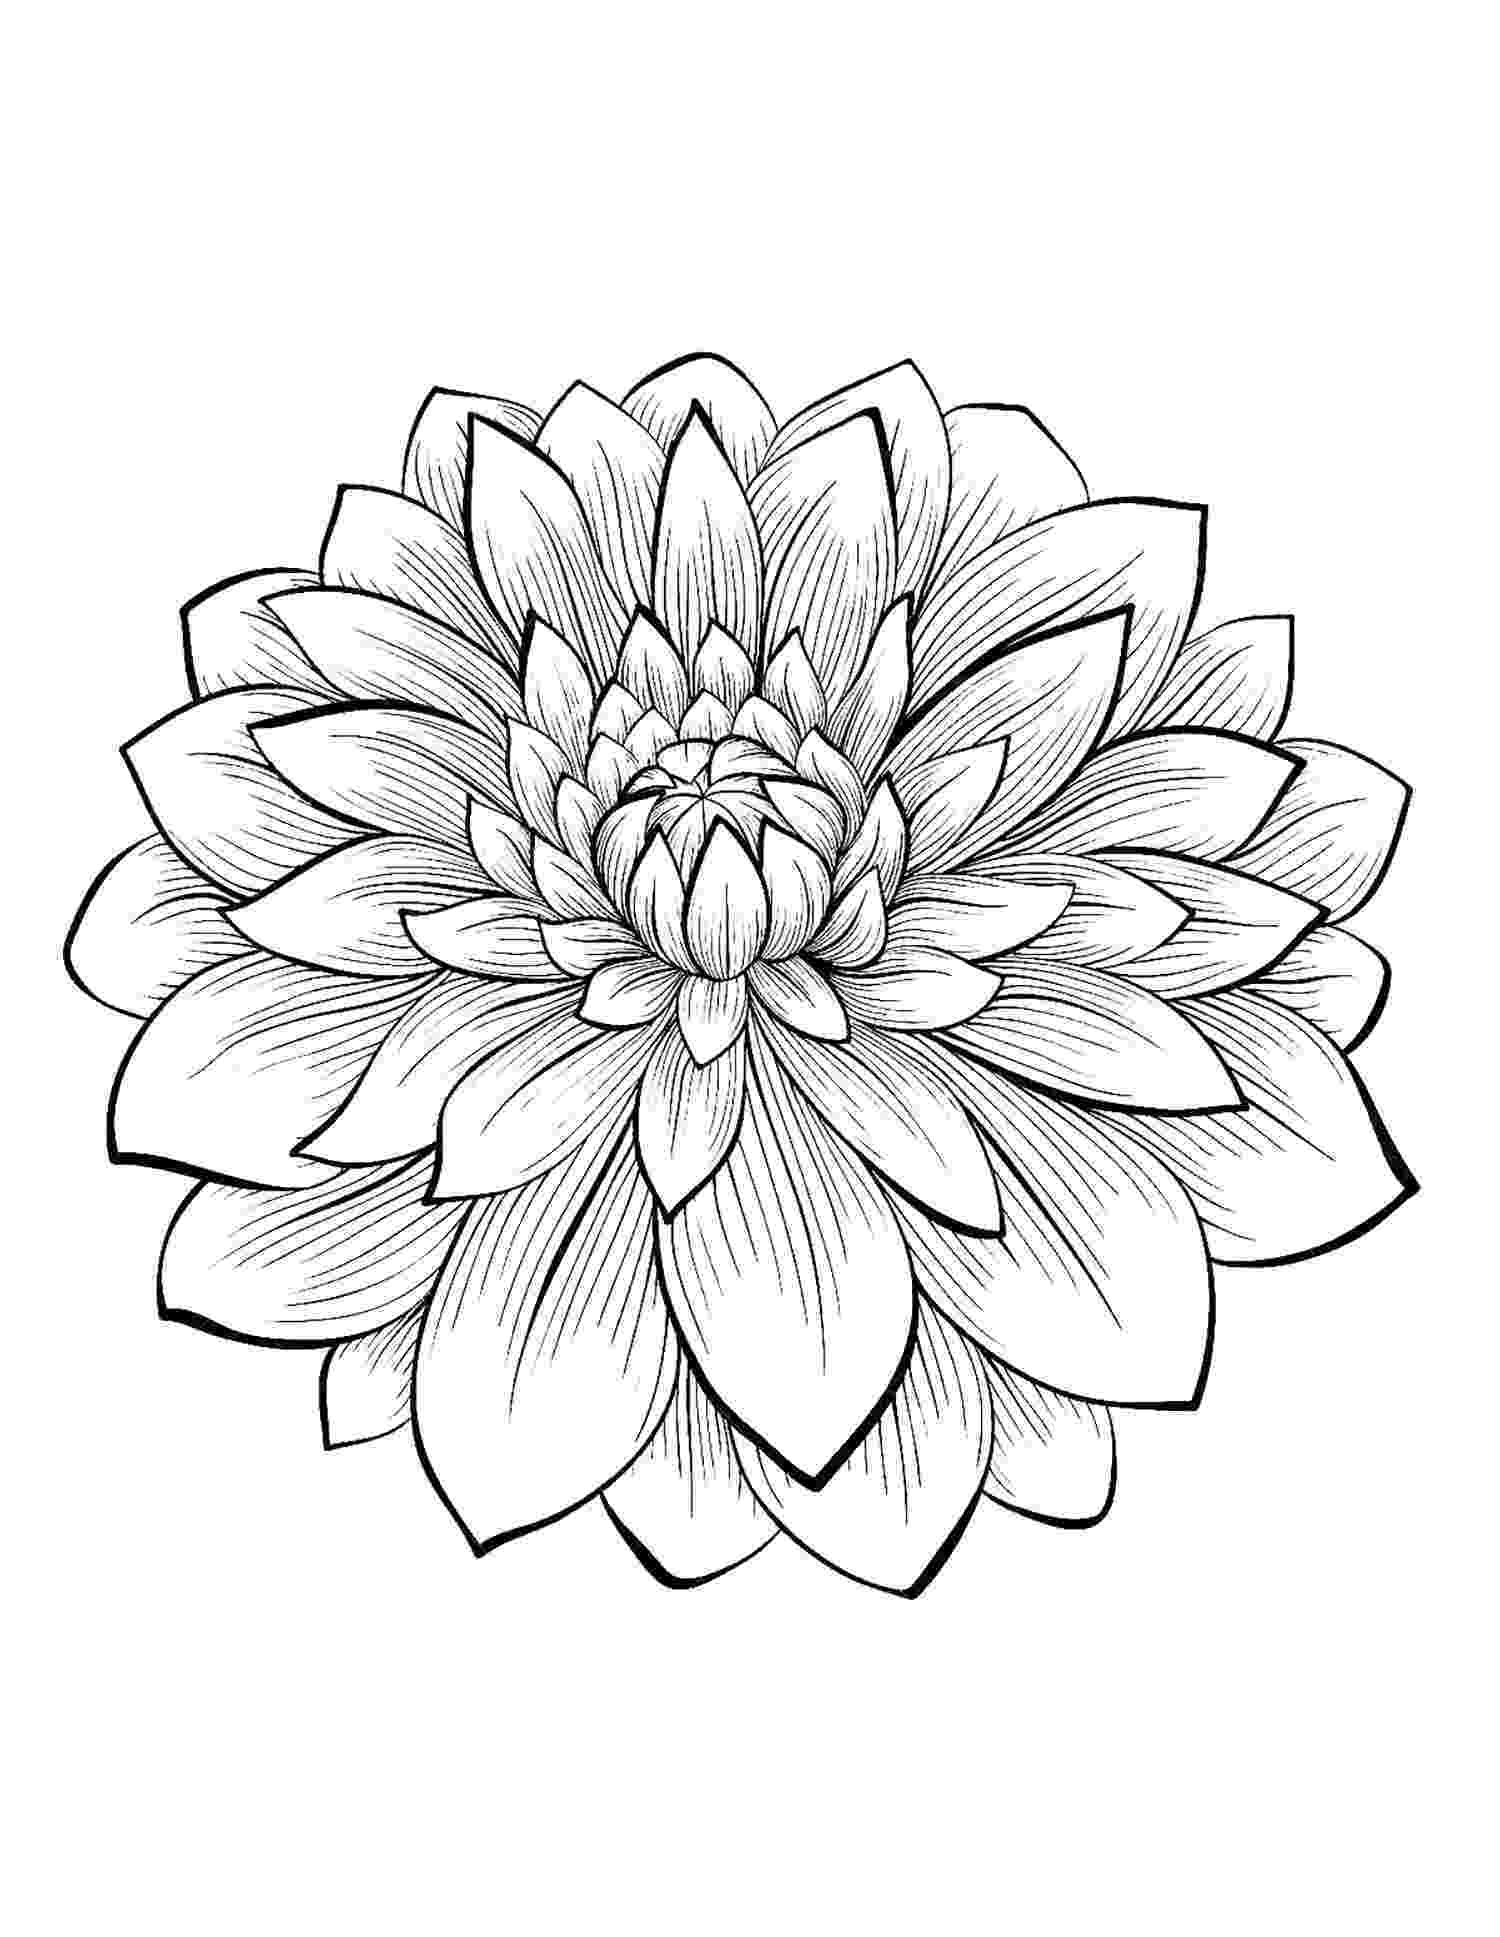 pretty flowers coloring pages beautiful printable flowers coloring pages coloring pretty flowers pages